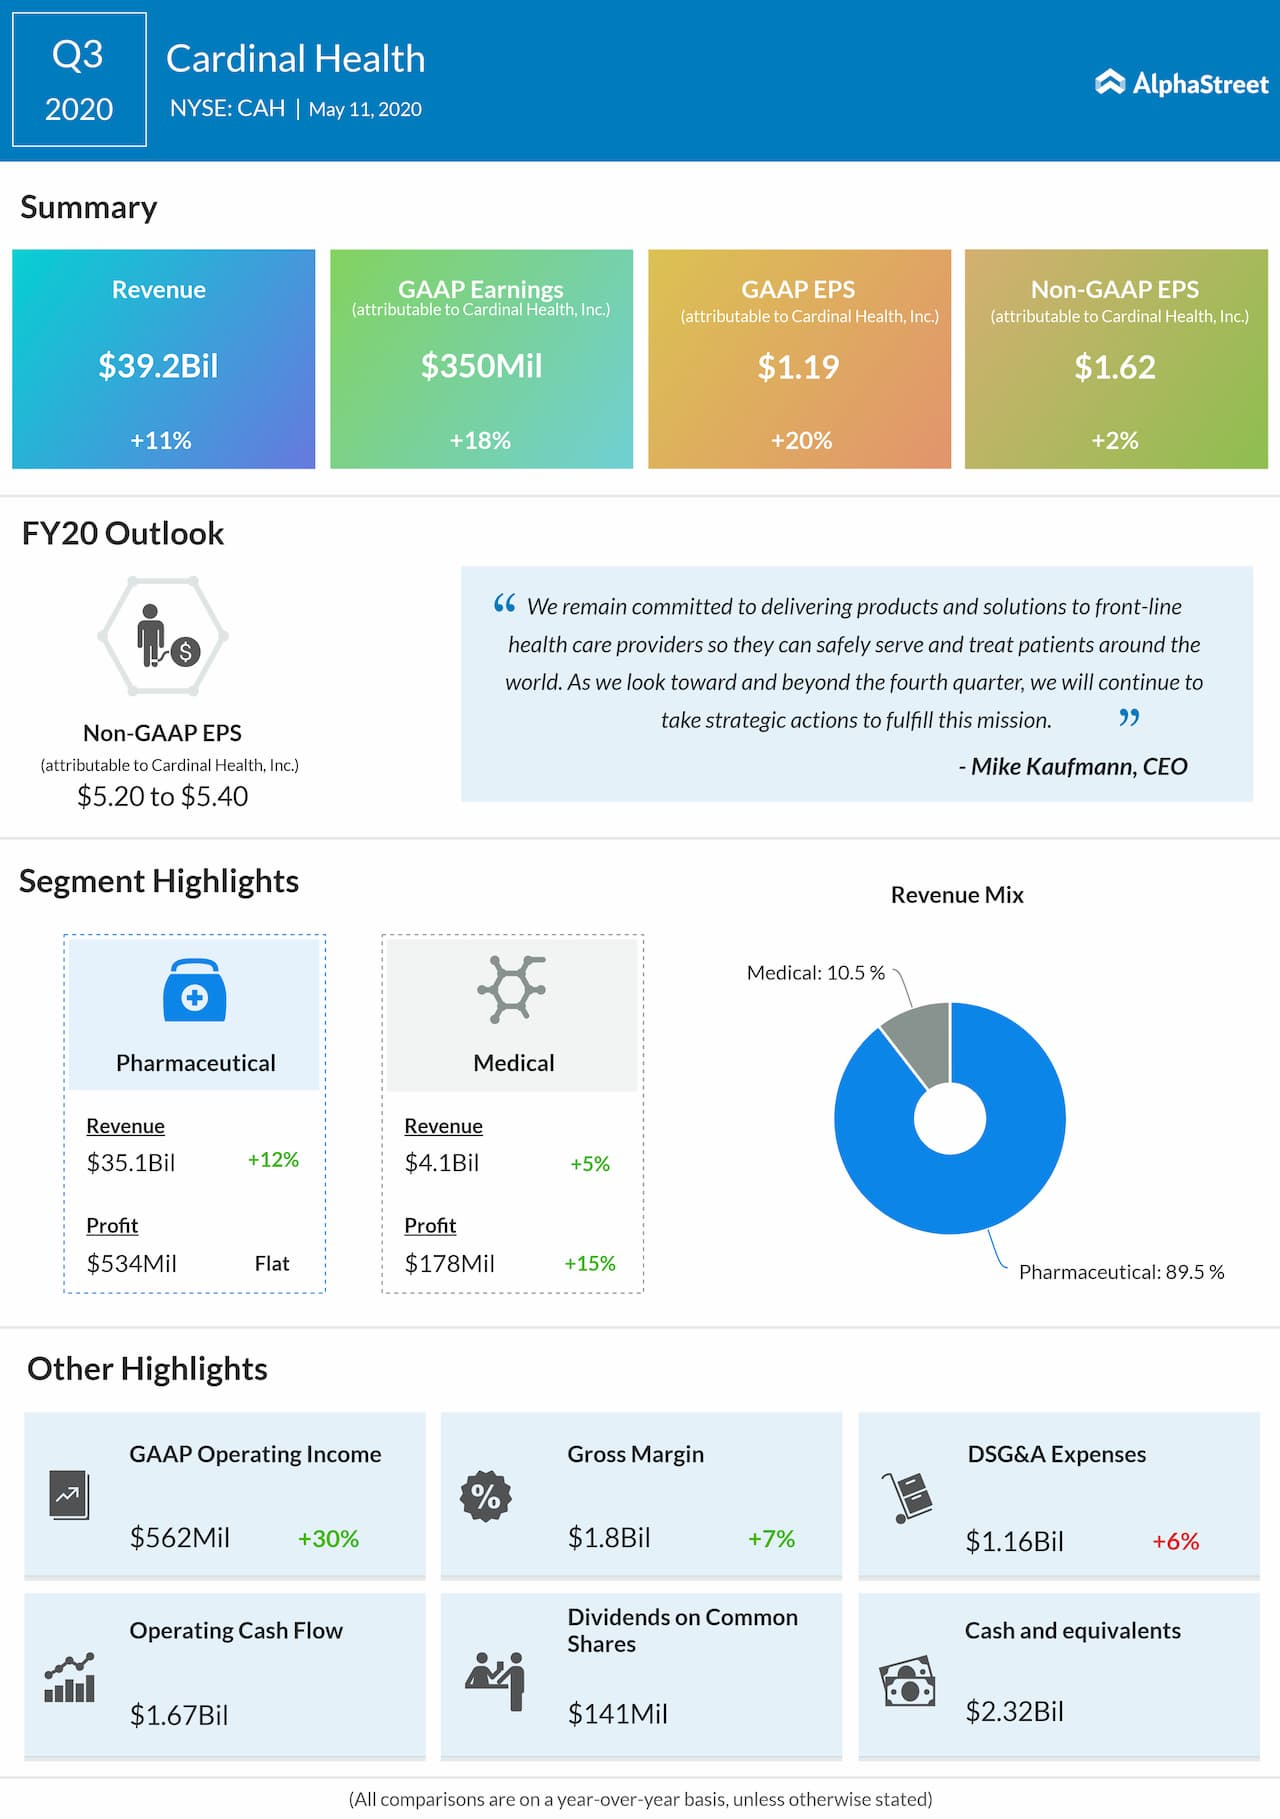 Cardinal Health reports Q3 2020 earnings results